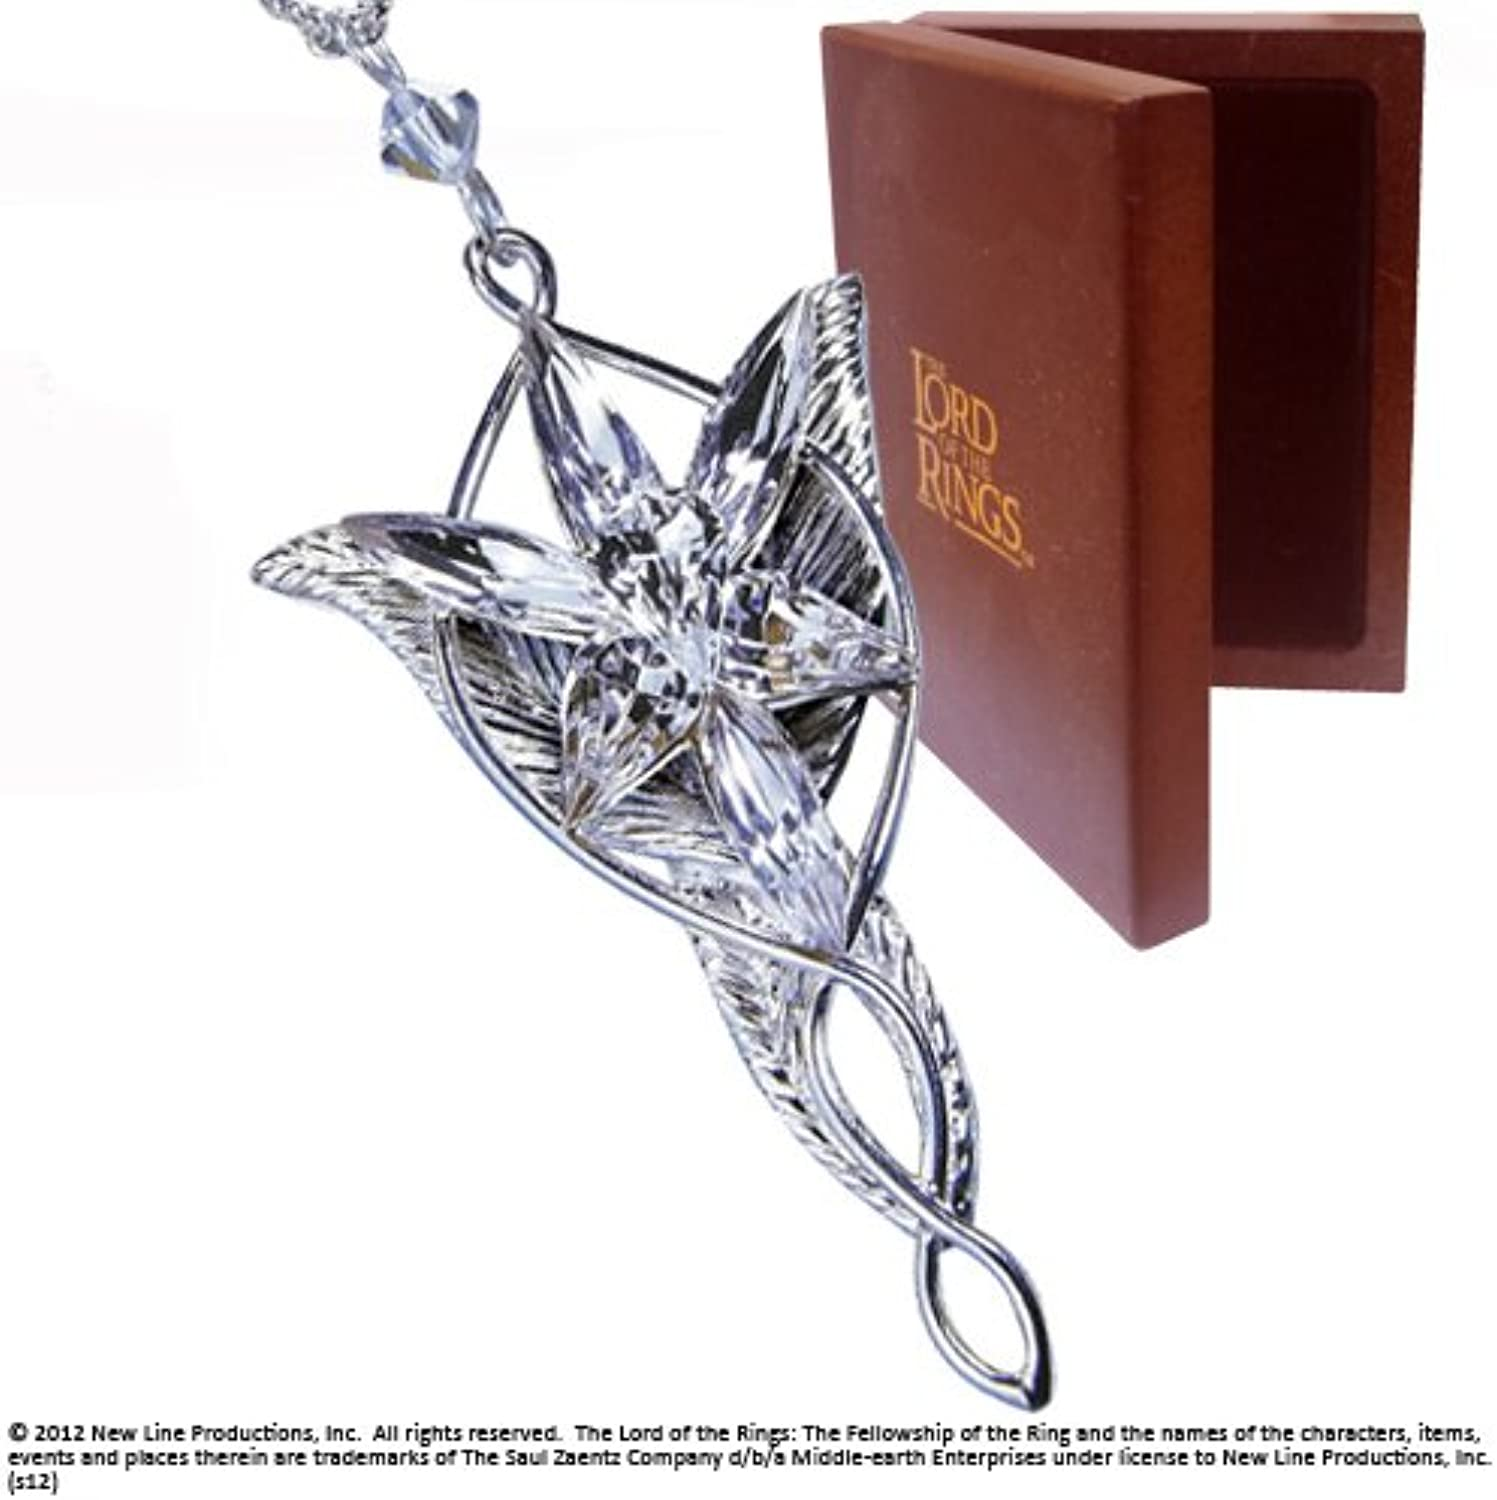 The Noble Collection Arwen Evenstar Pendant